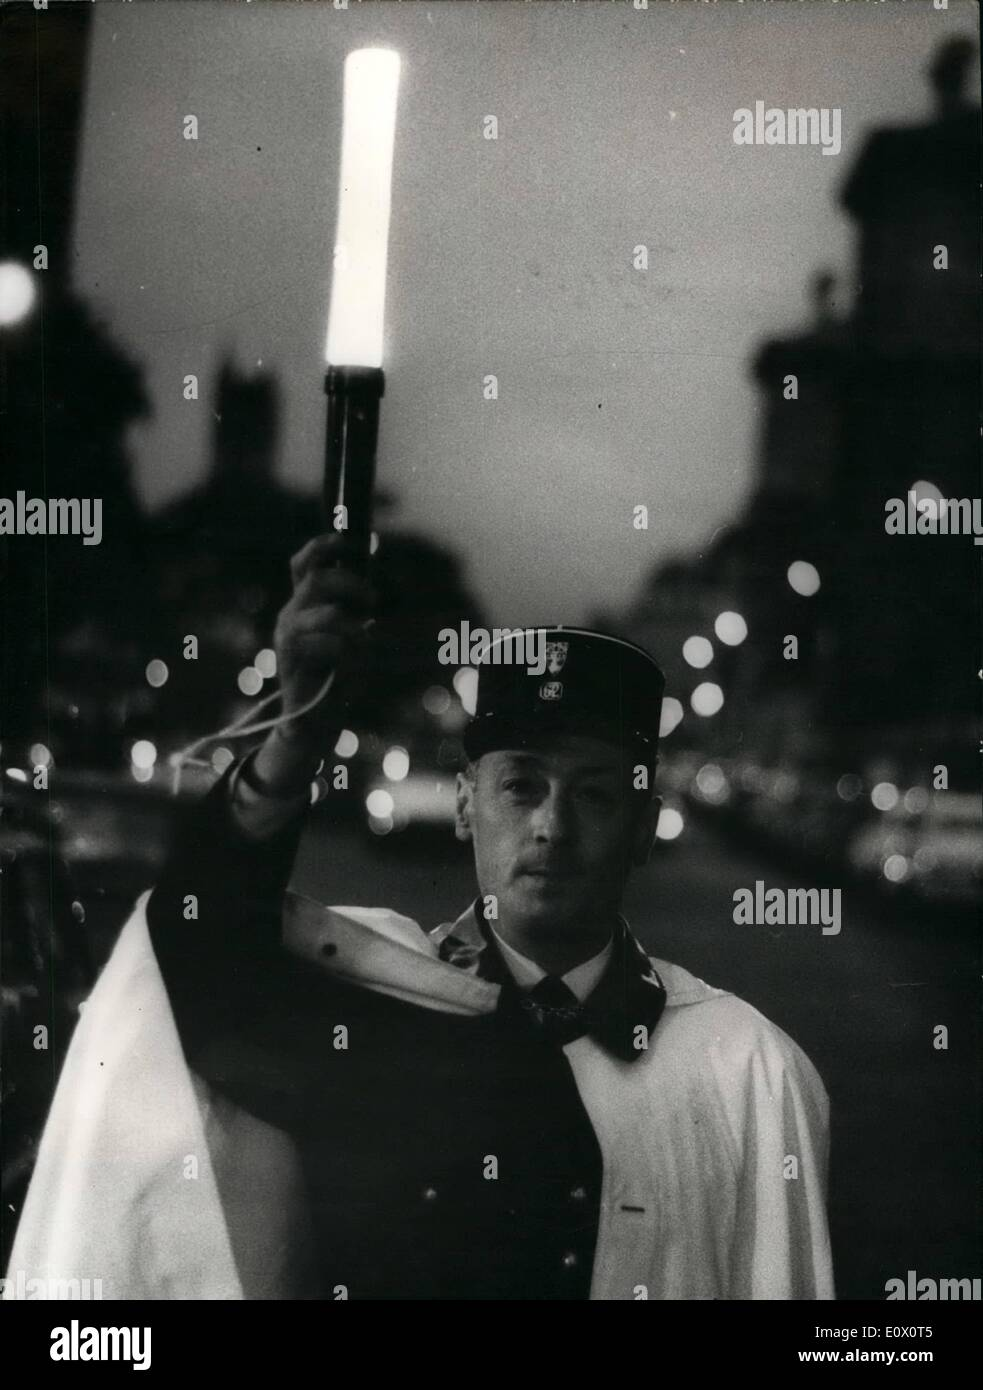 Oct. 10, 1964 - Luminous Baton For Paris Traffic Policemen. Photo shows A Paris Traffic Policeman Equipped With The New Luminous Baton For Night Duty. - Stock Image